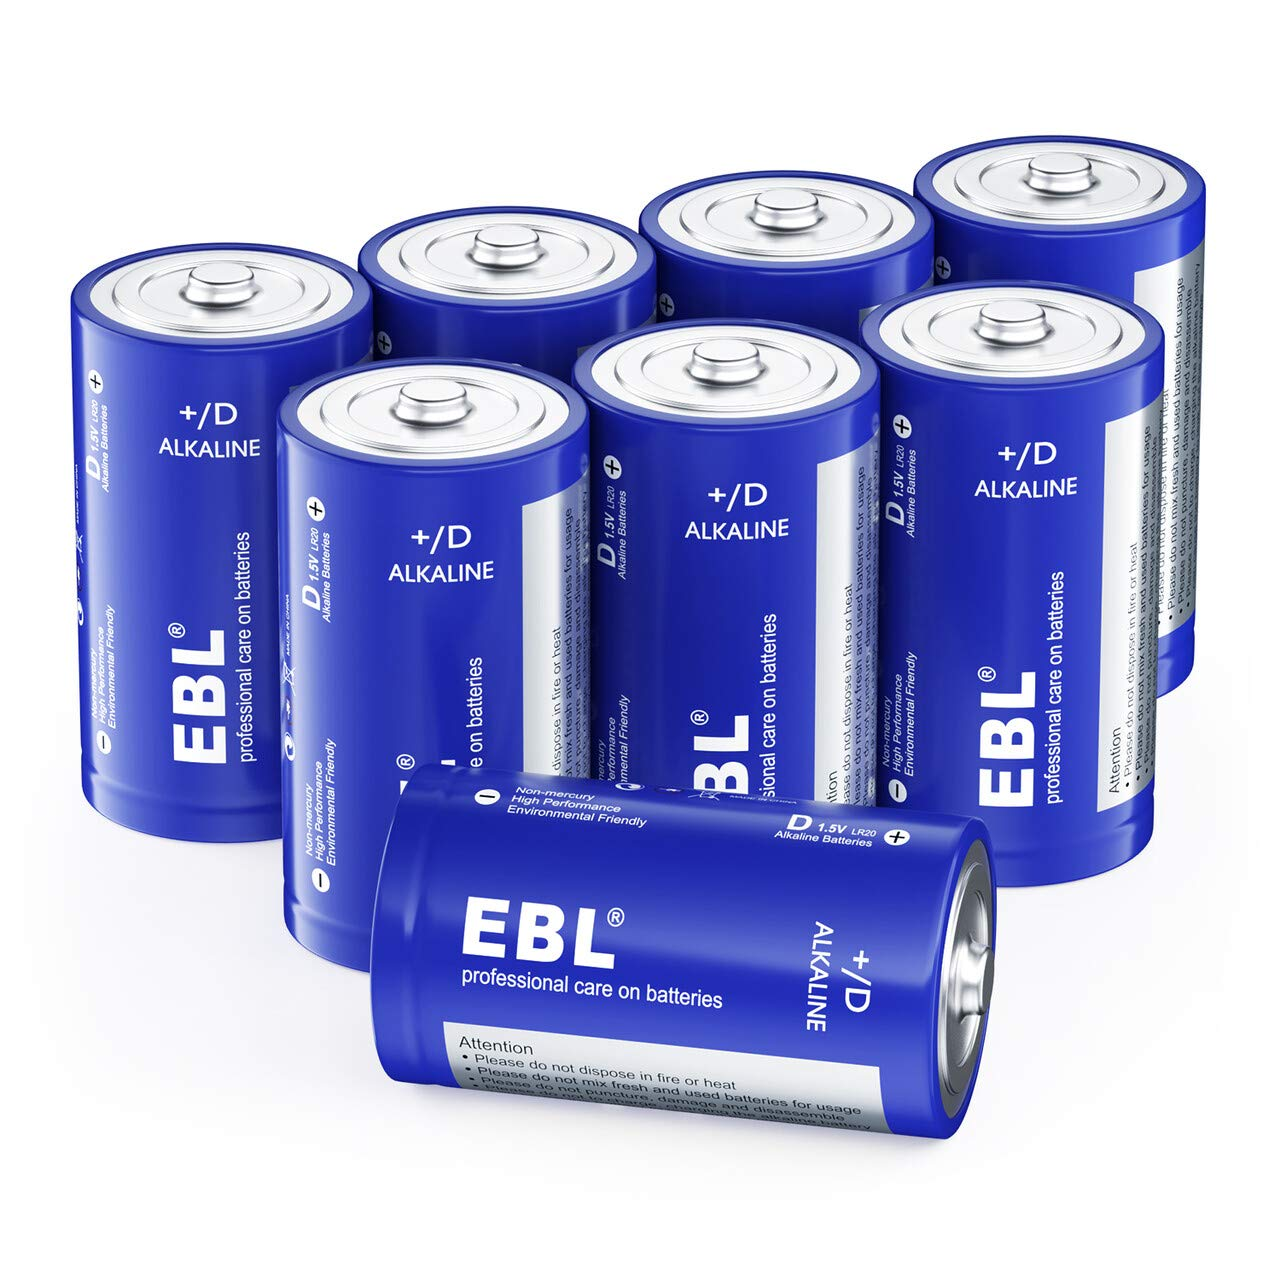 EBL D Batteries Alkaline D Batteries - Durable D Batteries for Electronic Devices Household and Business(Pack of 8)